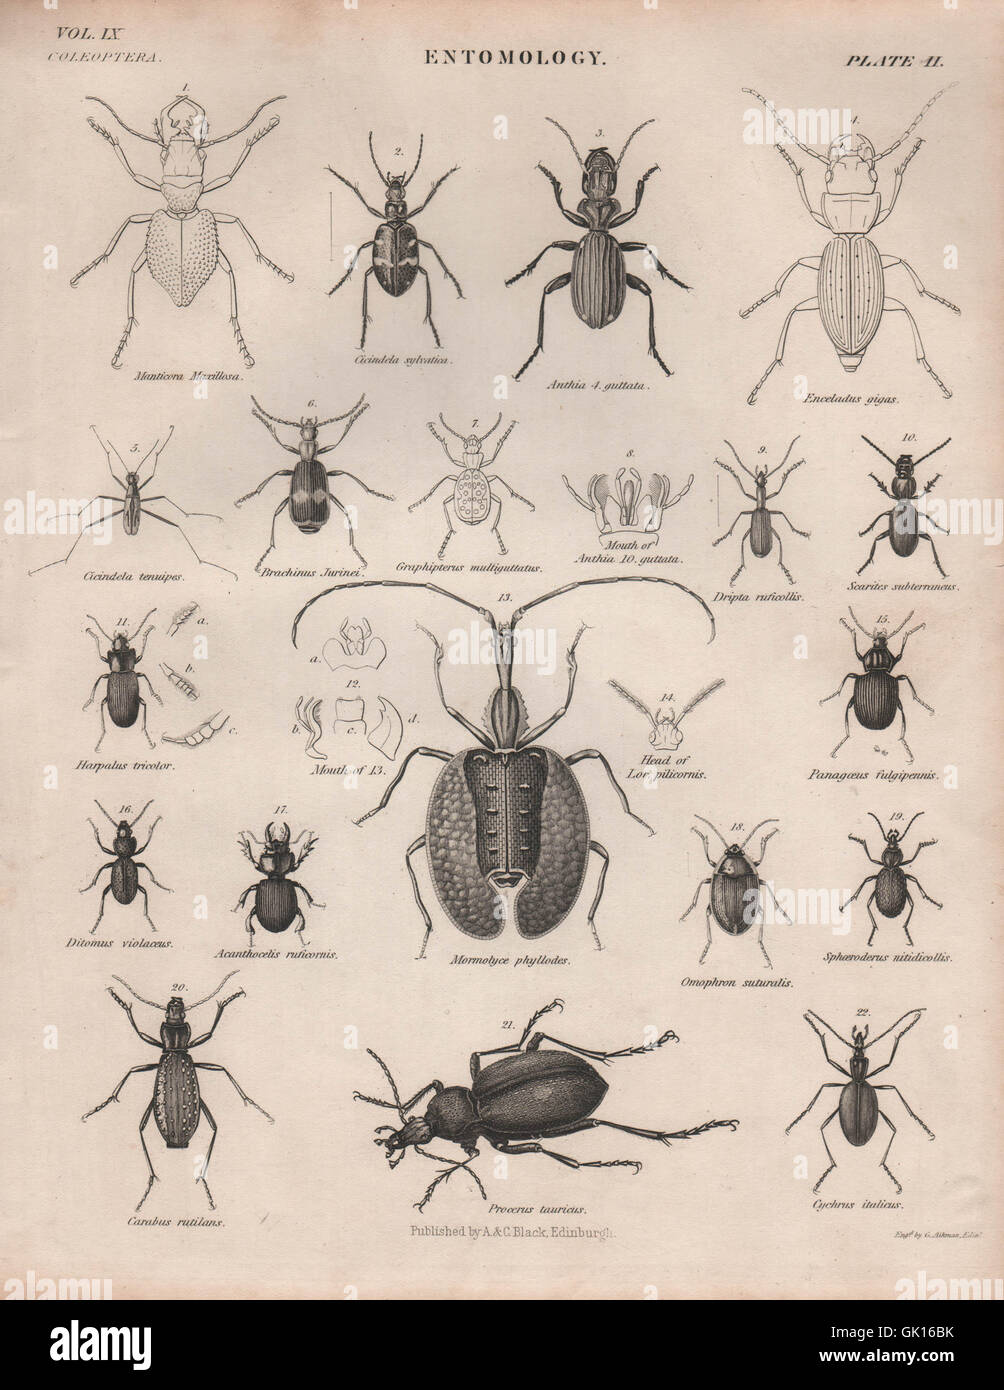 ENTOMOLOGY 2. Insects beetles. BRITANNICA, antique print 1860 - Stock Image